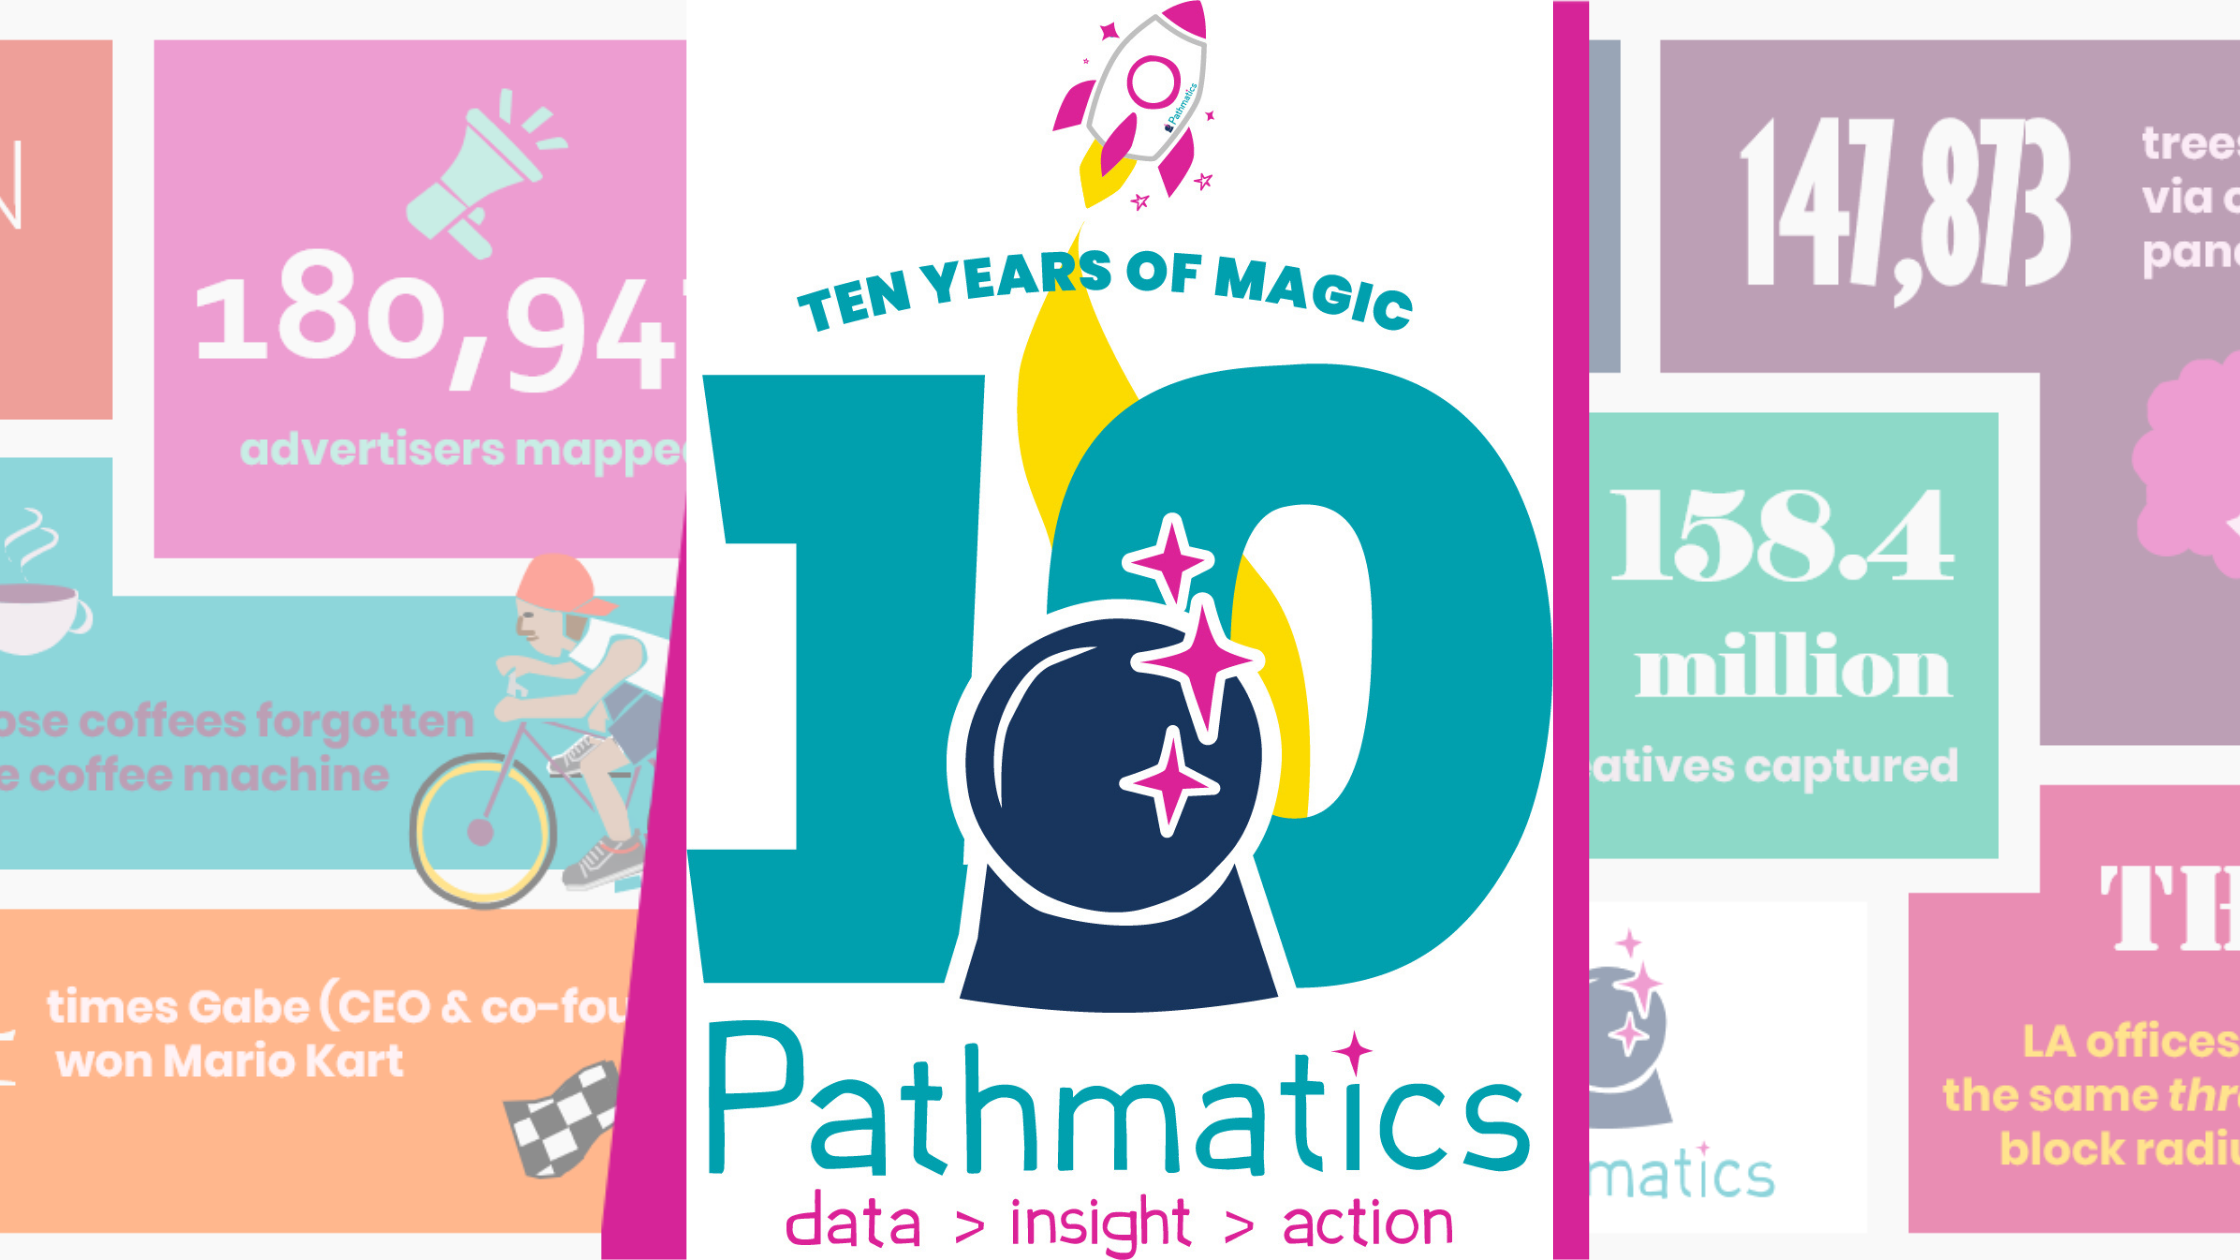 Pathmatics Celebrates 10 Years of Bringing Transparency to Digital Advertising